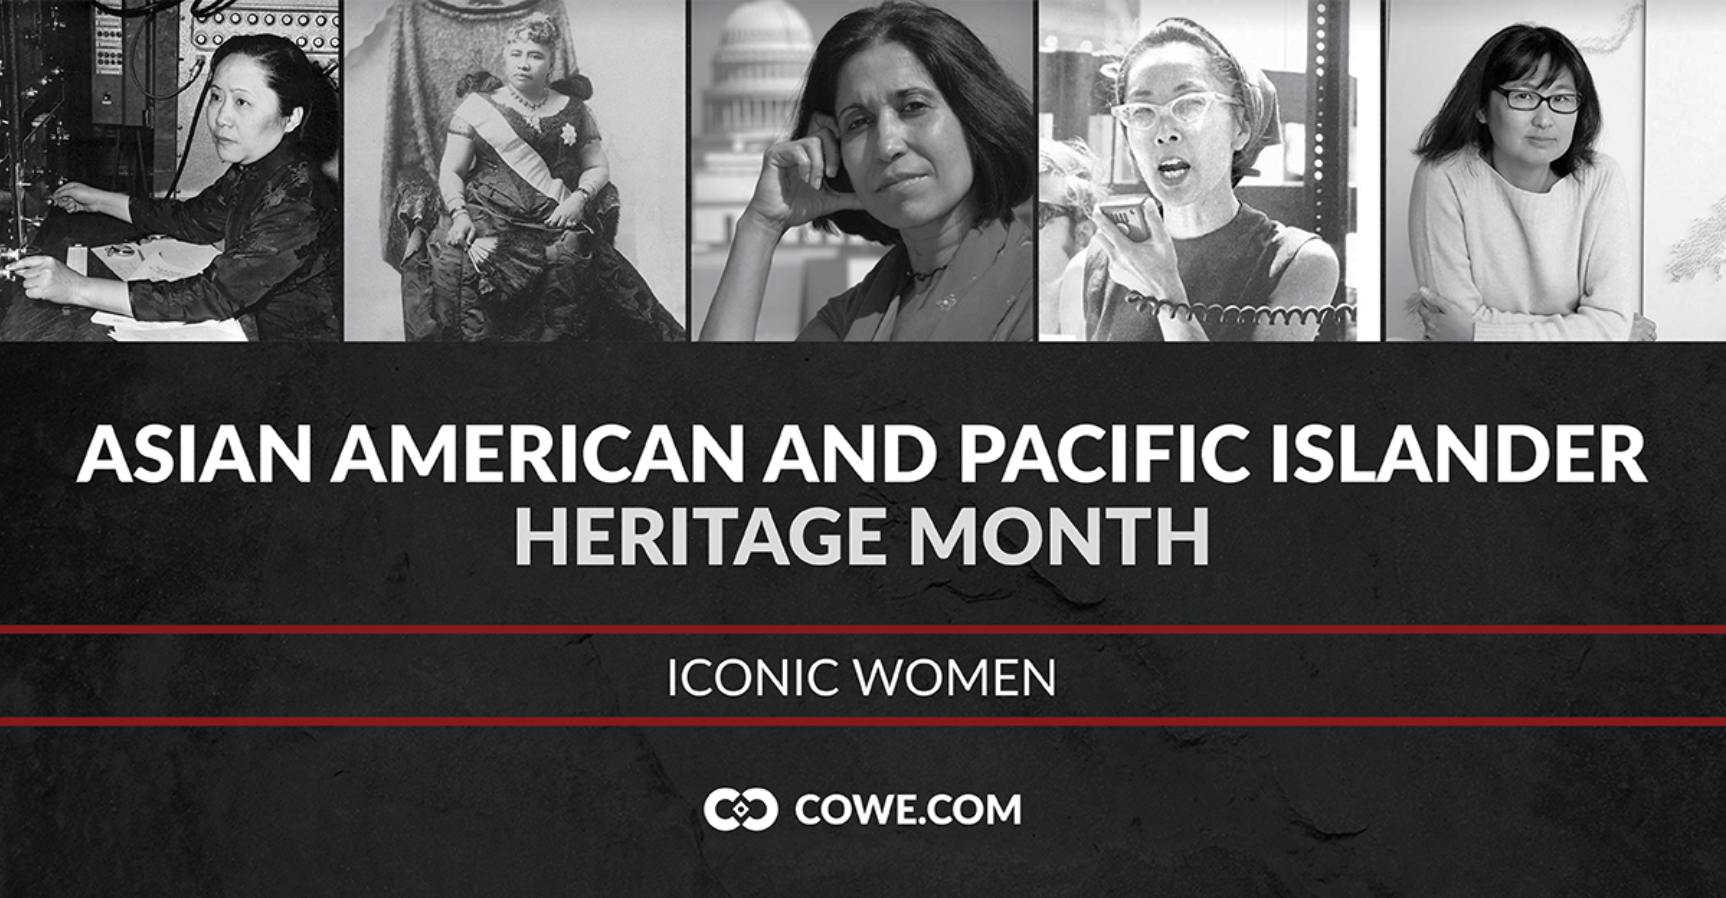 Asian American and Pacific Islander Heritage Month: Iconic Women